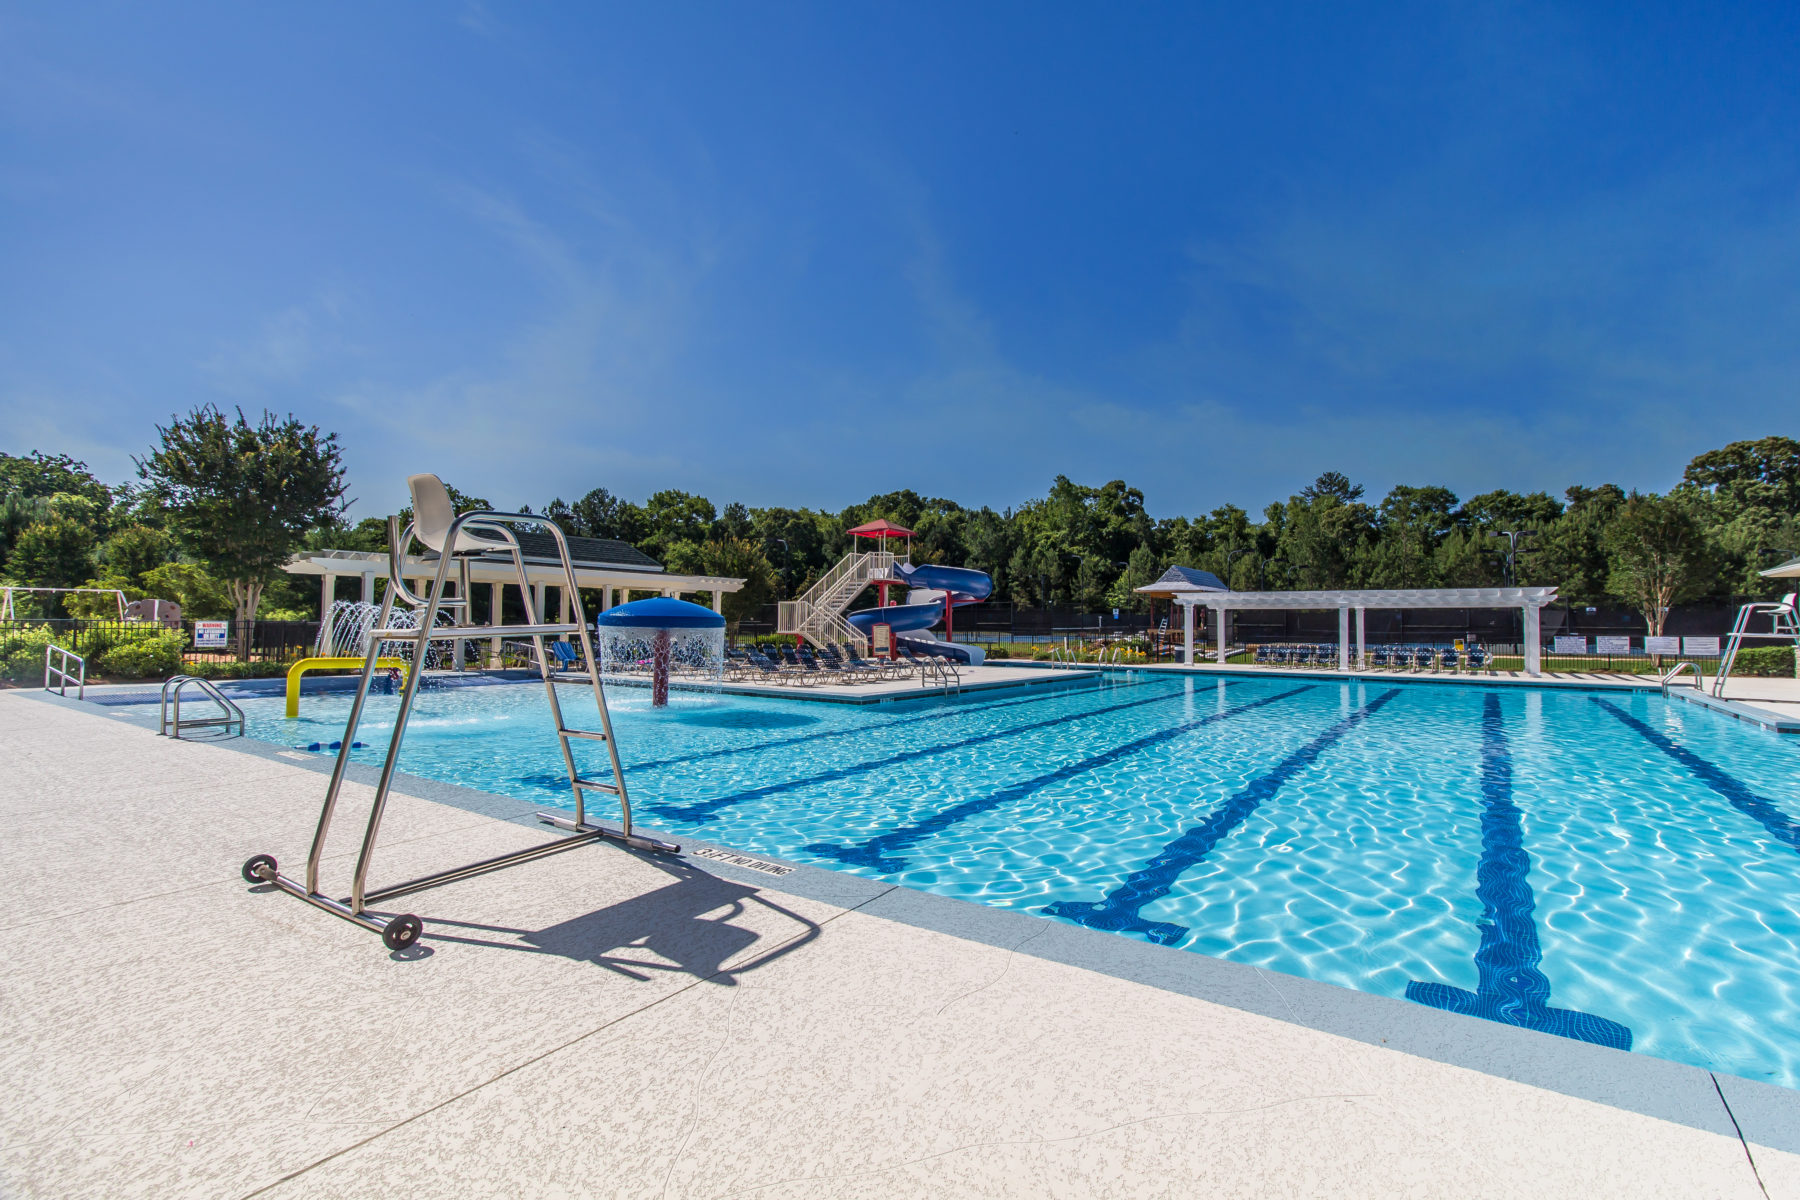 The pool at traditions of braselton